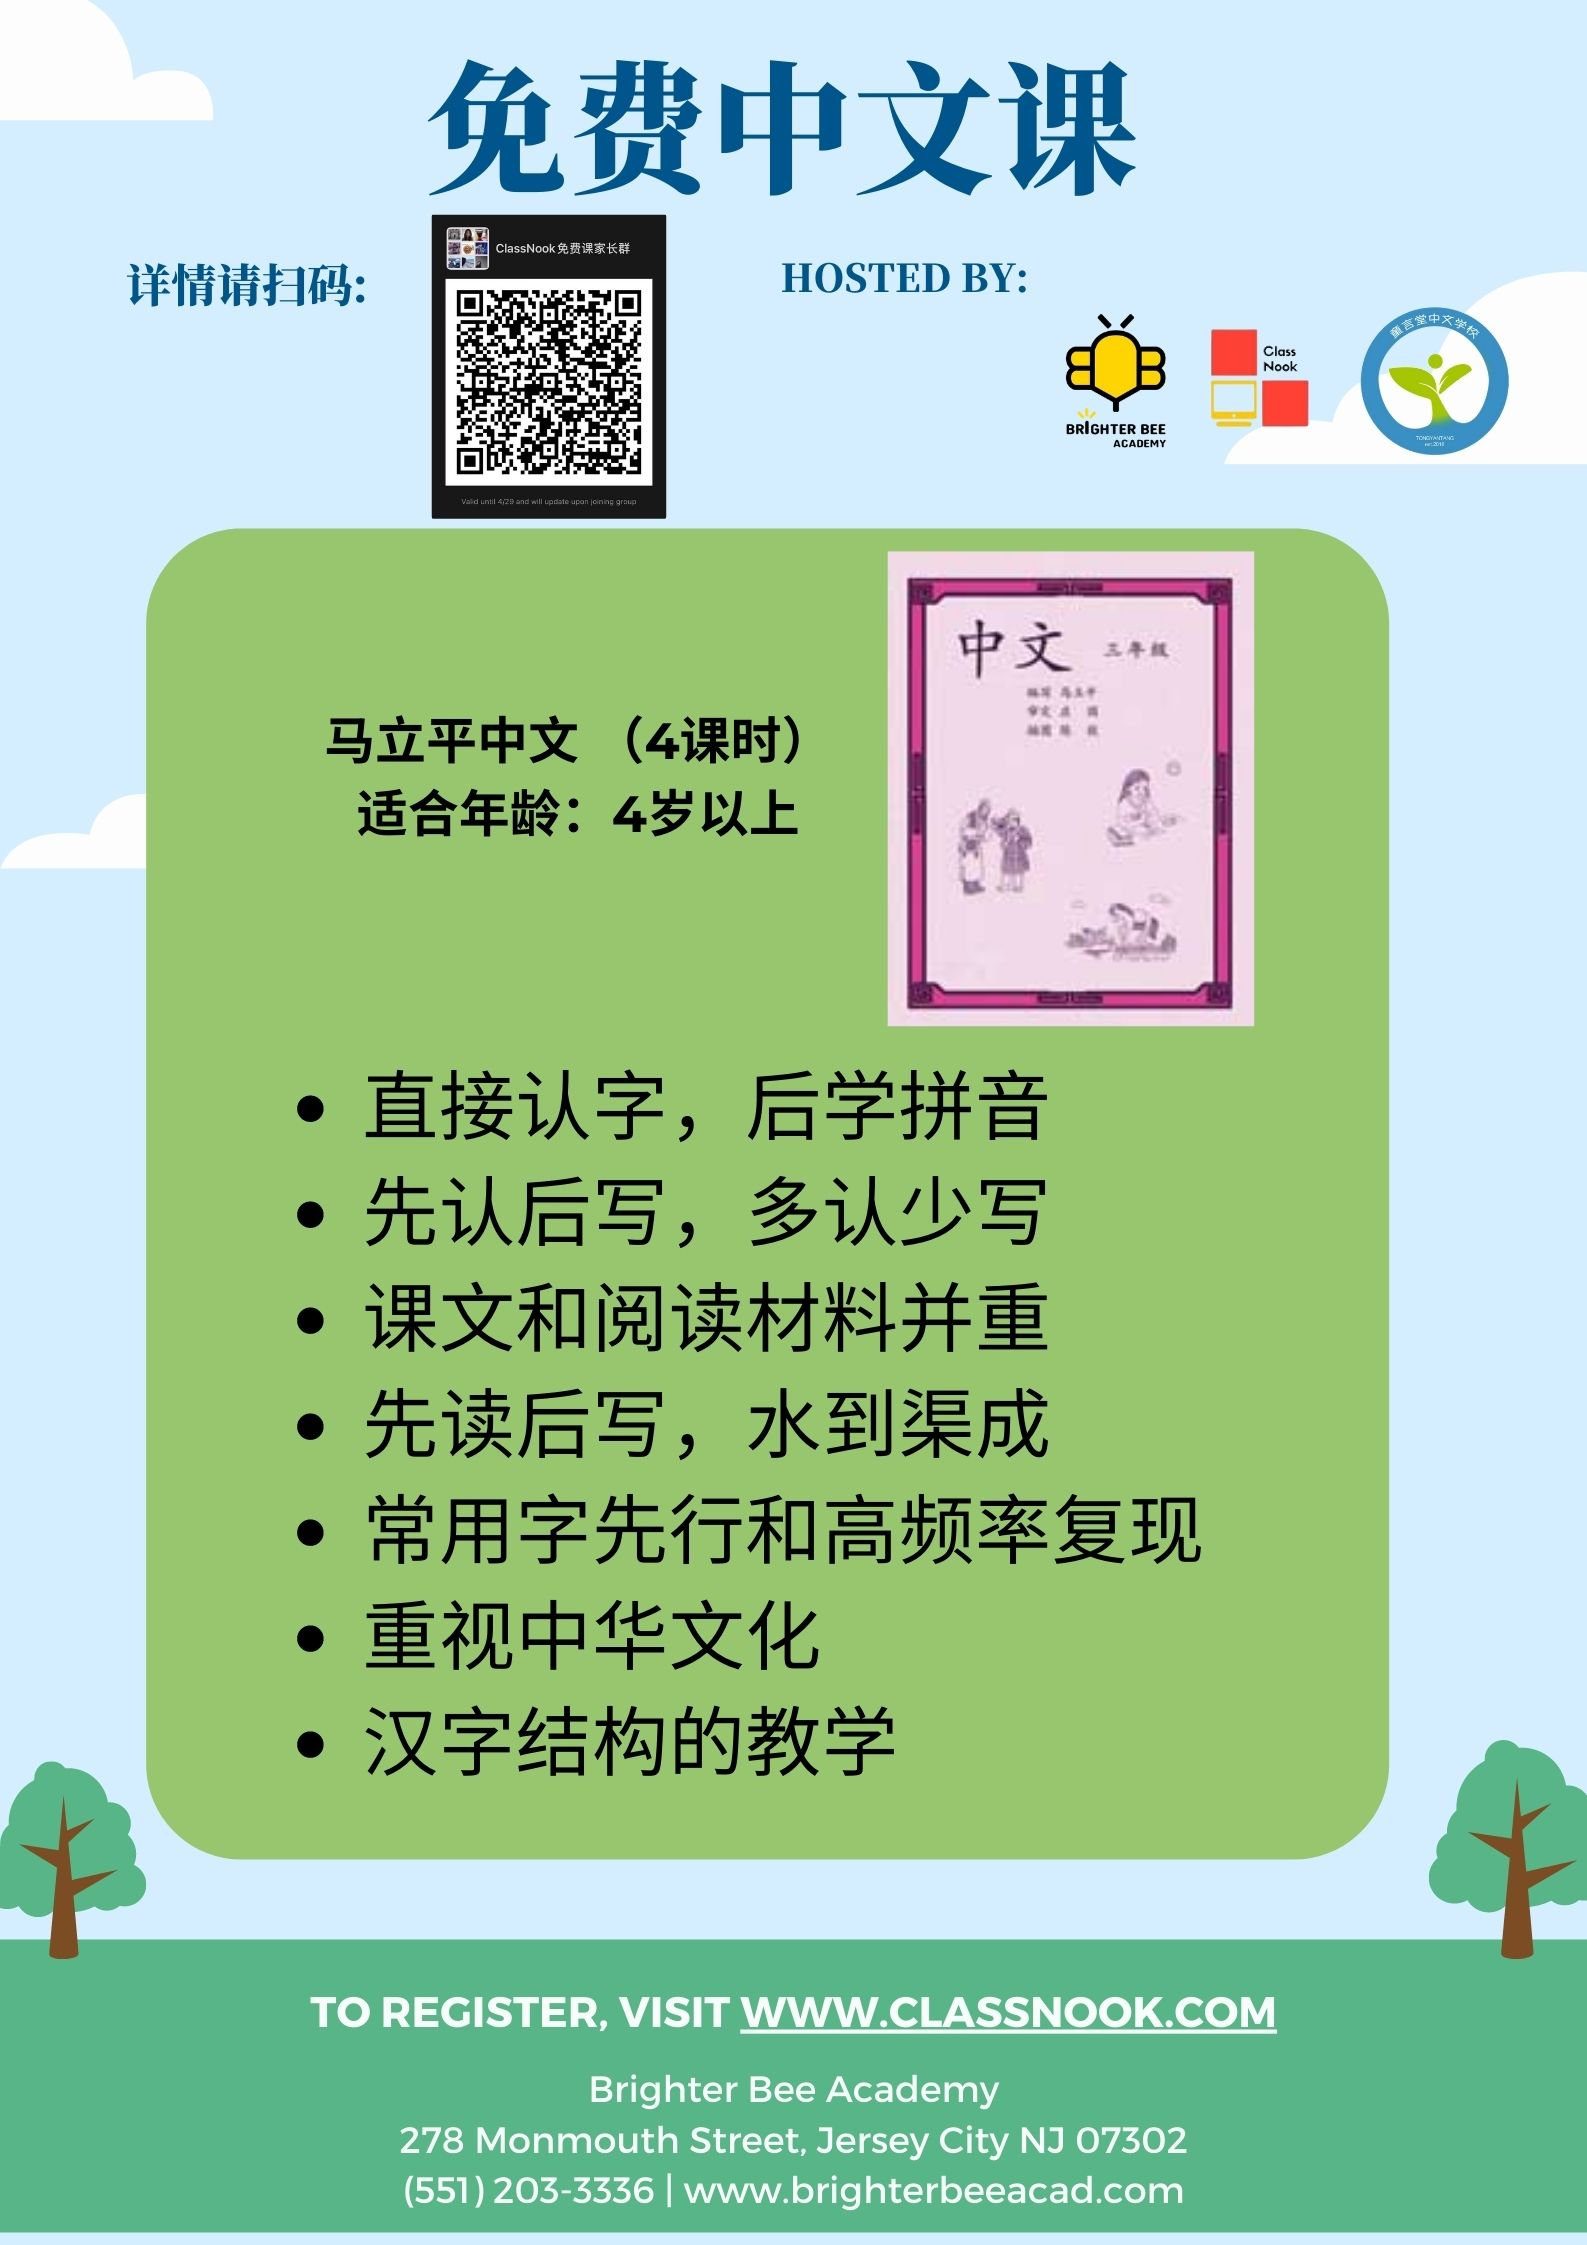 Copy of BB Course Posters 的複本 (1)